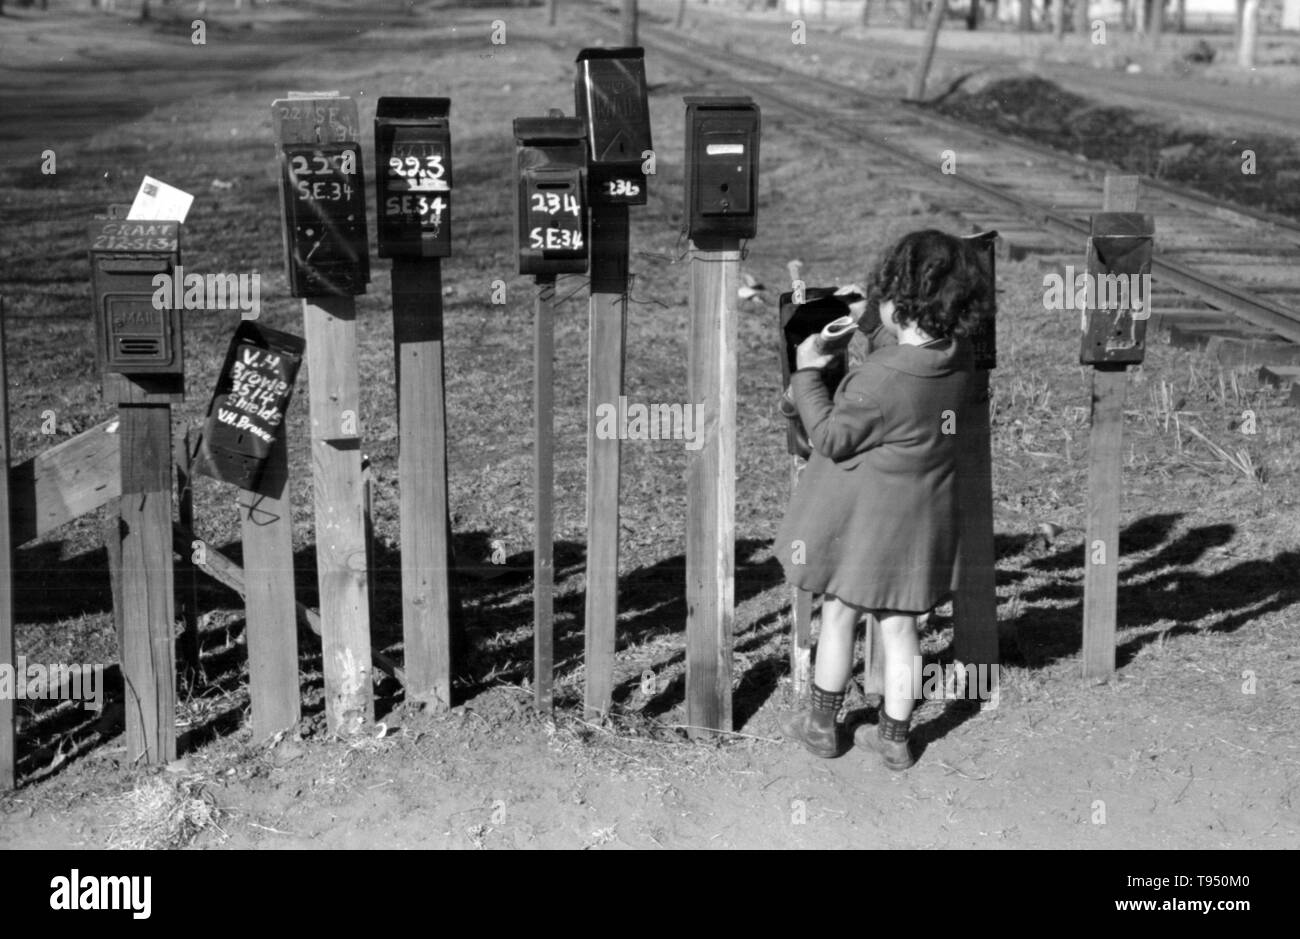 Mail Delivery Black and White Stock Photos & Images - Alamy